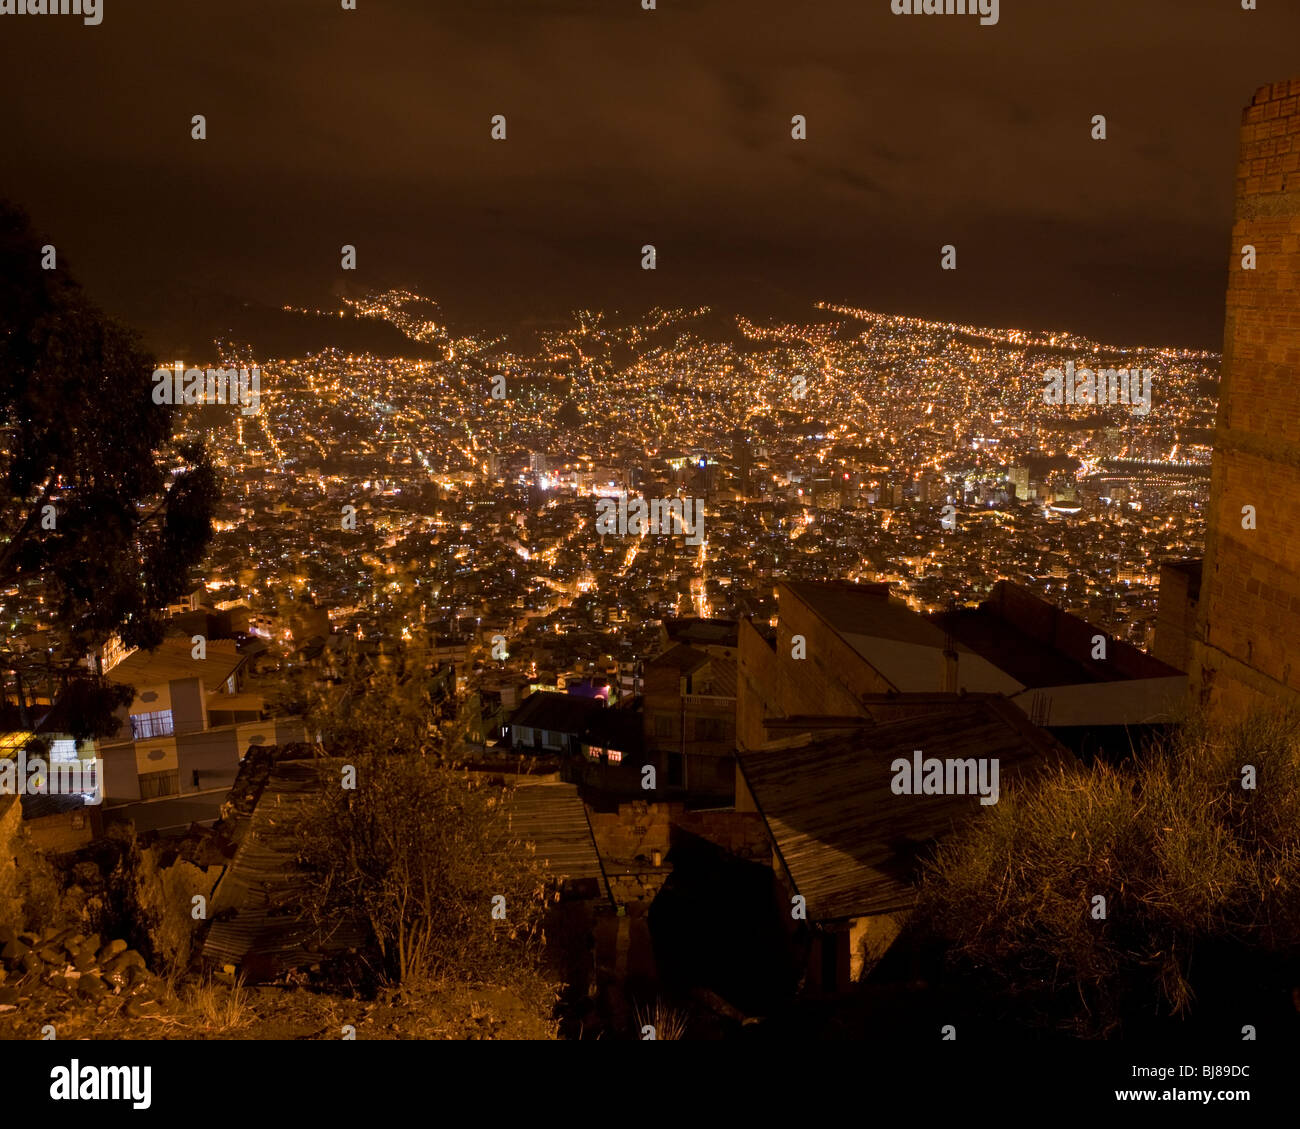 View of la paz, bolivia at night, as seen from el alto - Stock Image